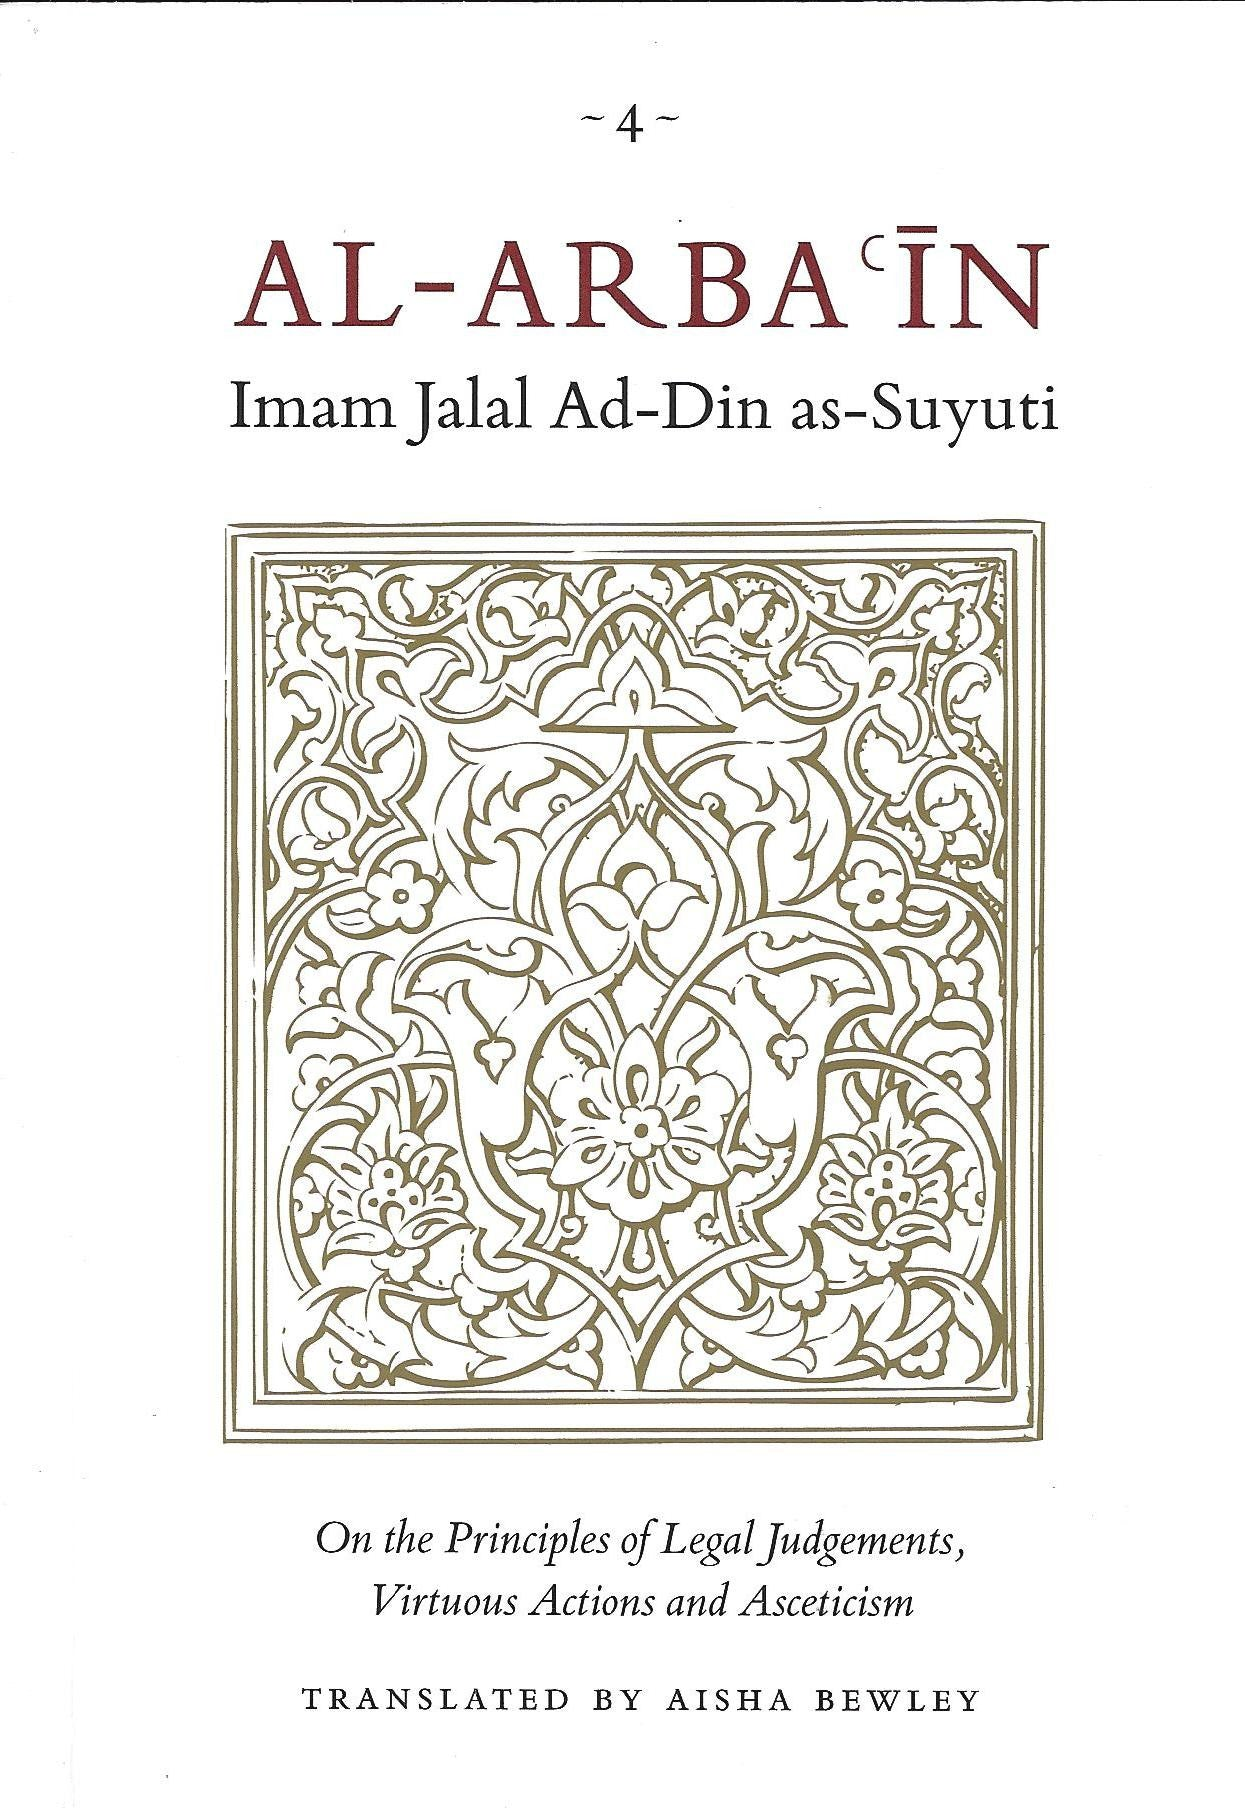 Al-Arba'in (4) of Imam Jalal ad-Din as-Suyuti (Al-Arba'in) , Book - Daybreak International Bookstore, Daybreak Press Global Bookshop